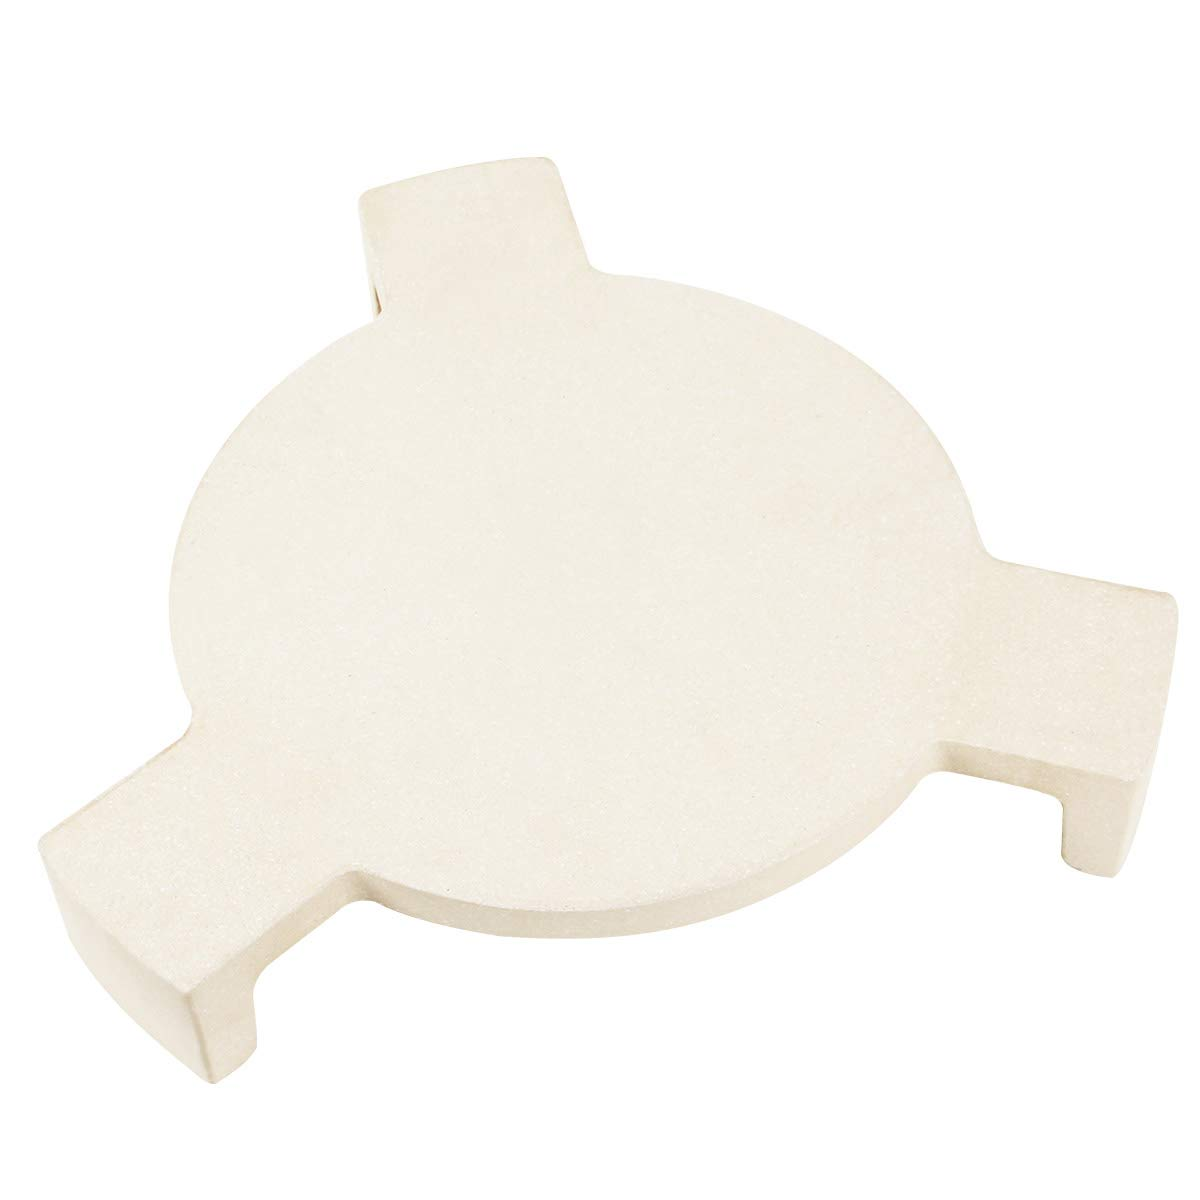 KAMaster Plate Setter Heat Deflector for Medium Big Green Egg,Ceramic Pizza Stone Smoking Stone Big Green Egg ConvEGGtor Accessories Heat Plate Replacement for Kamado Grill by KAMaster